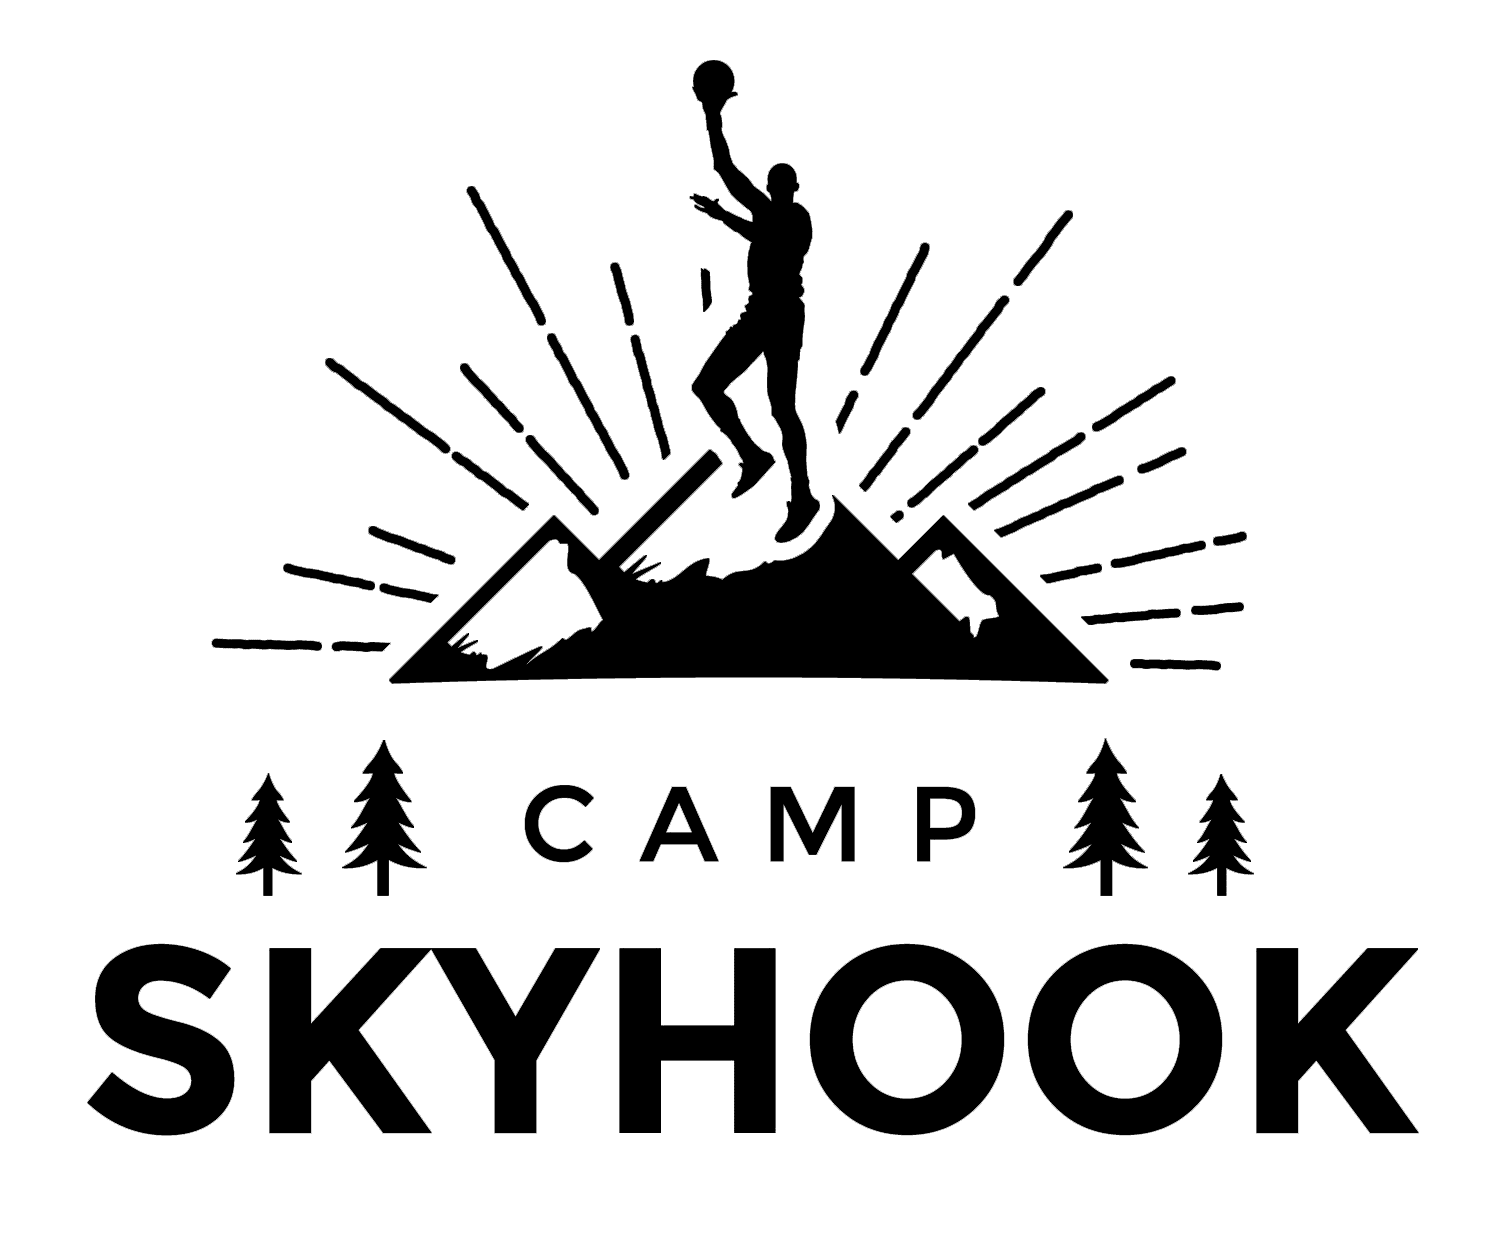 Camp Skyhook